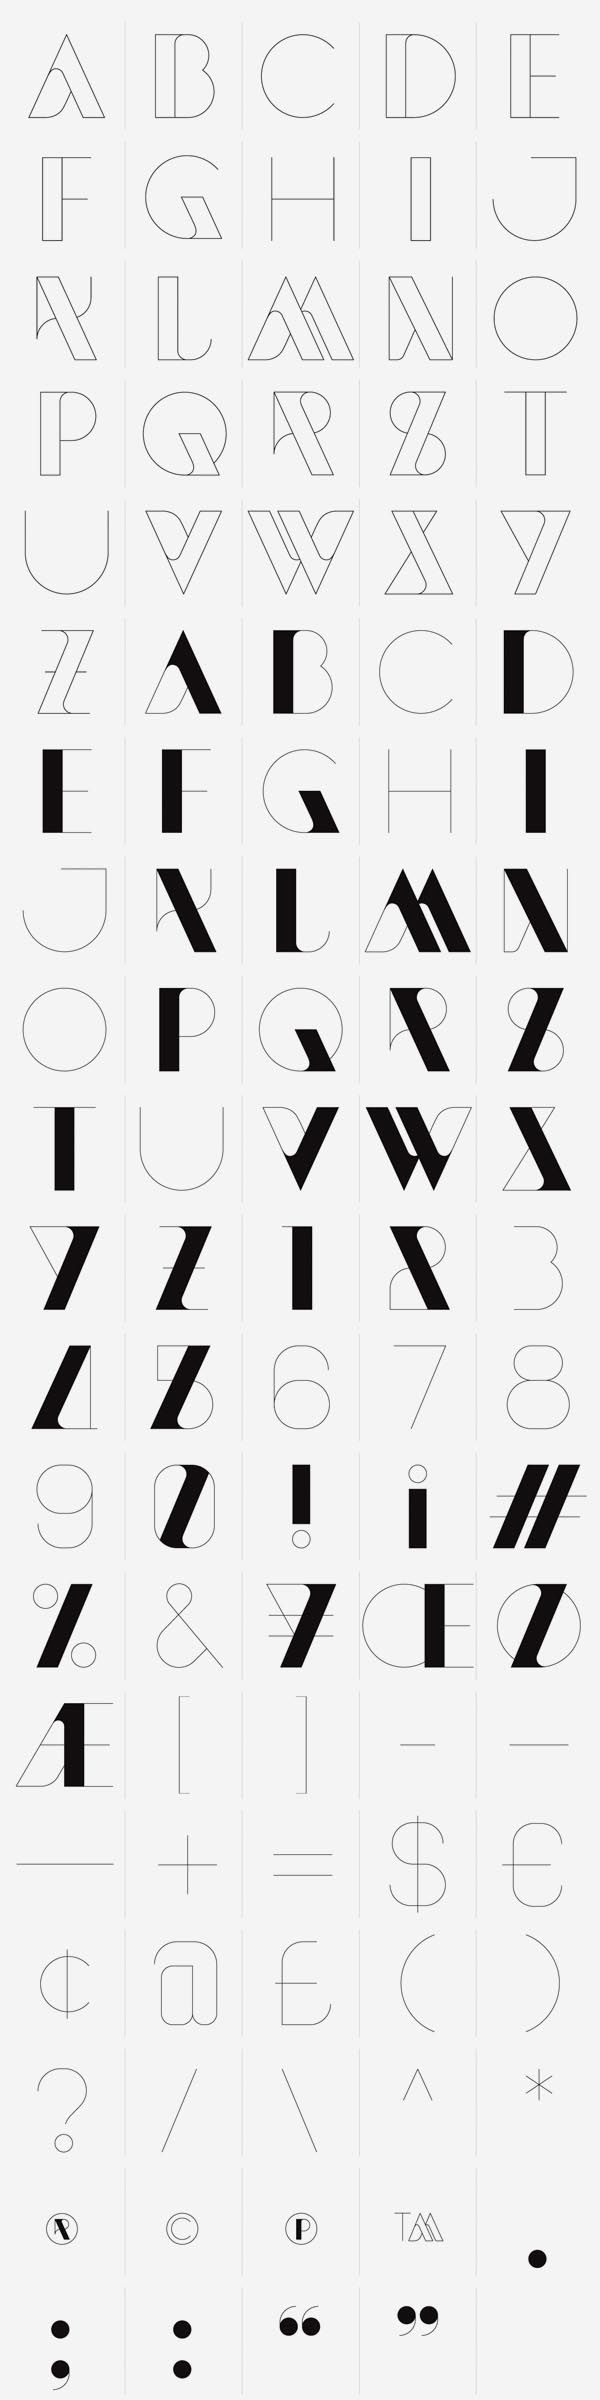 LOGO ideas - New Modern Typeface by Sawdust for HypeForType